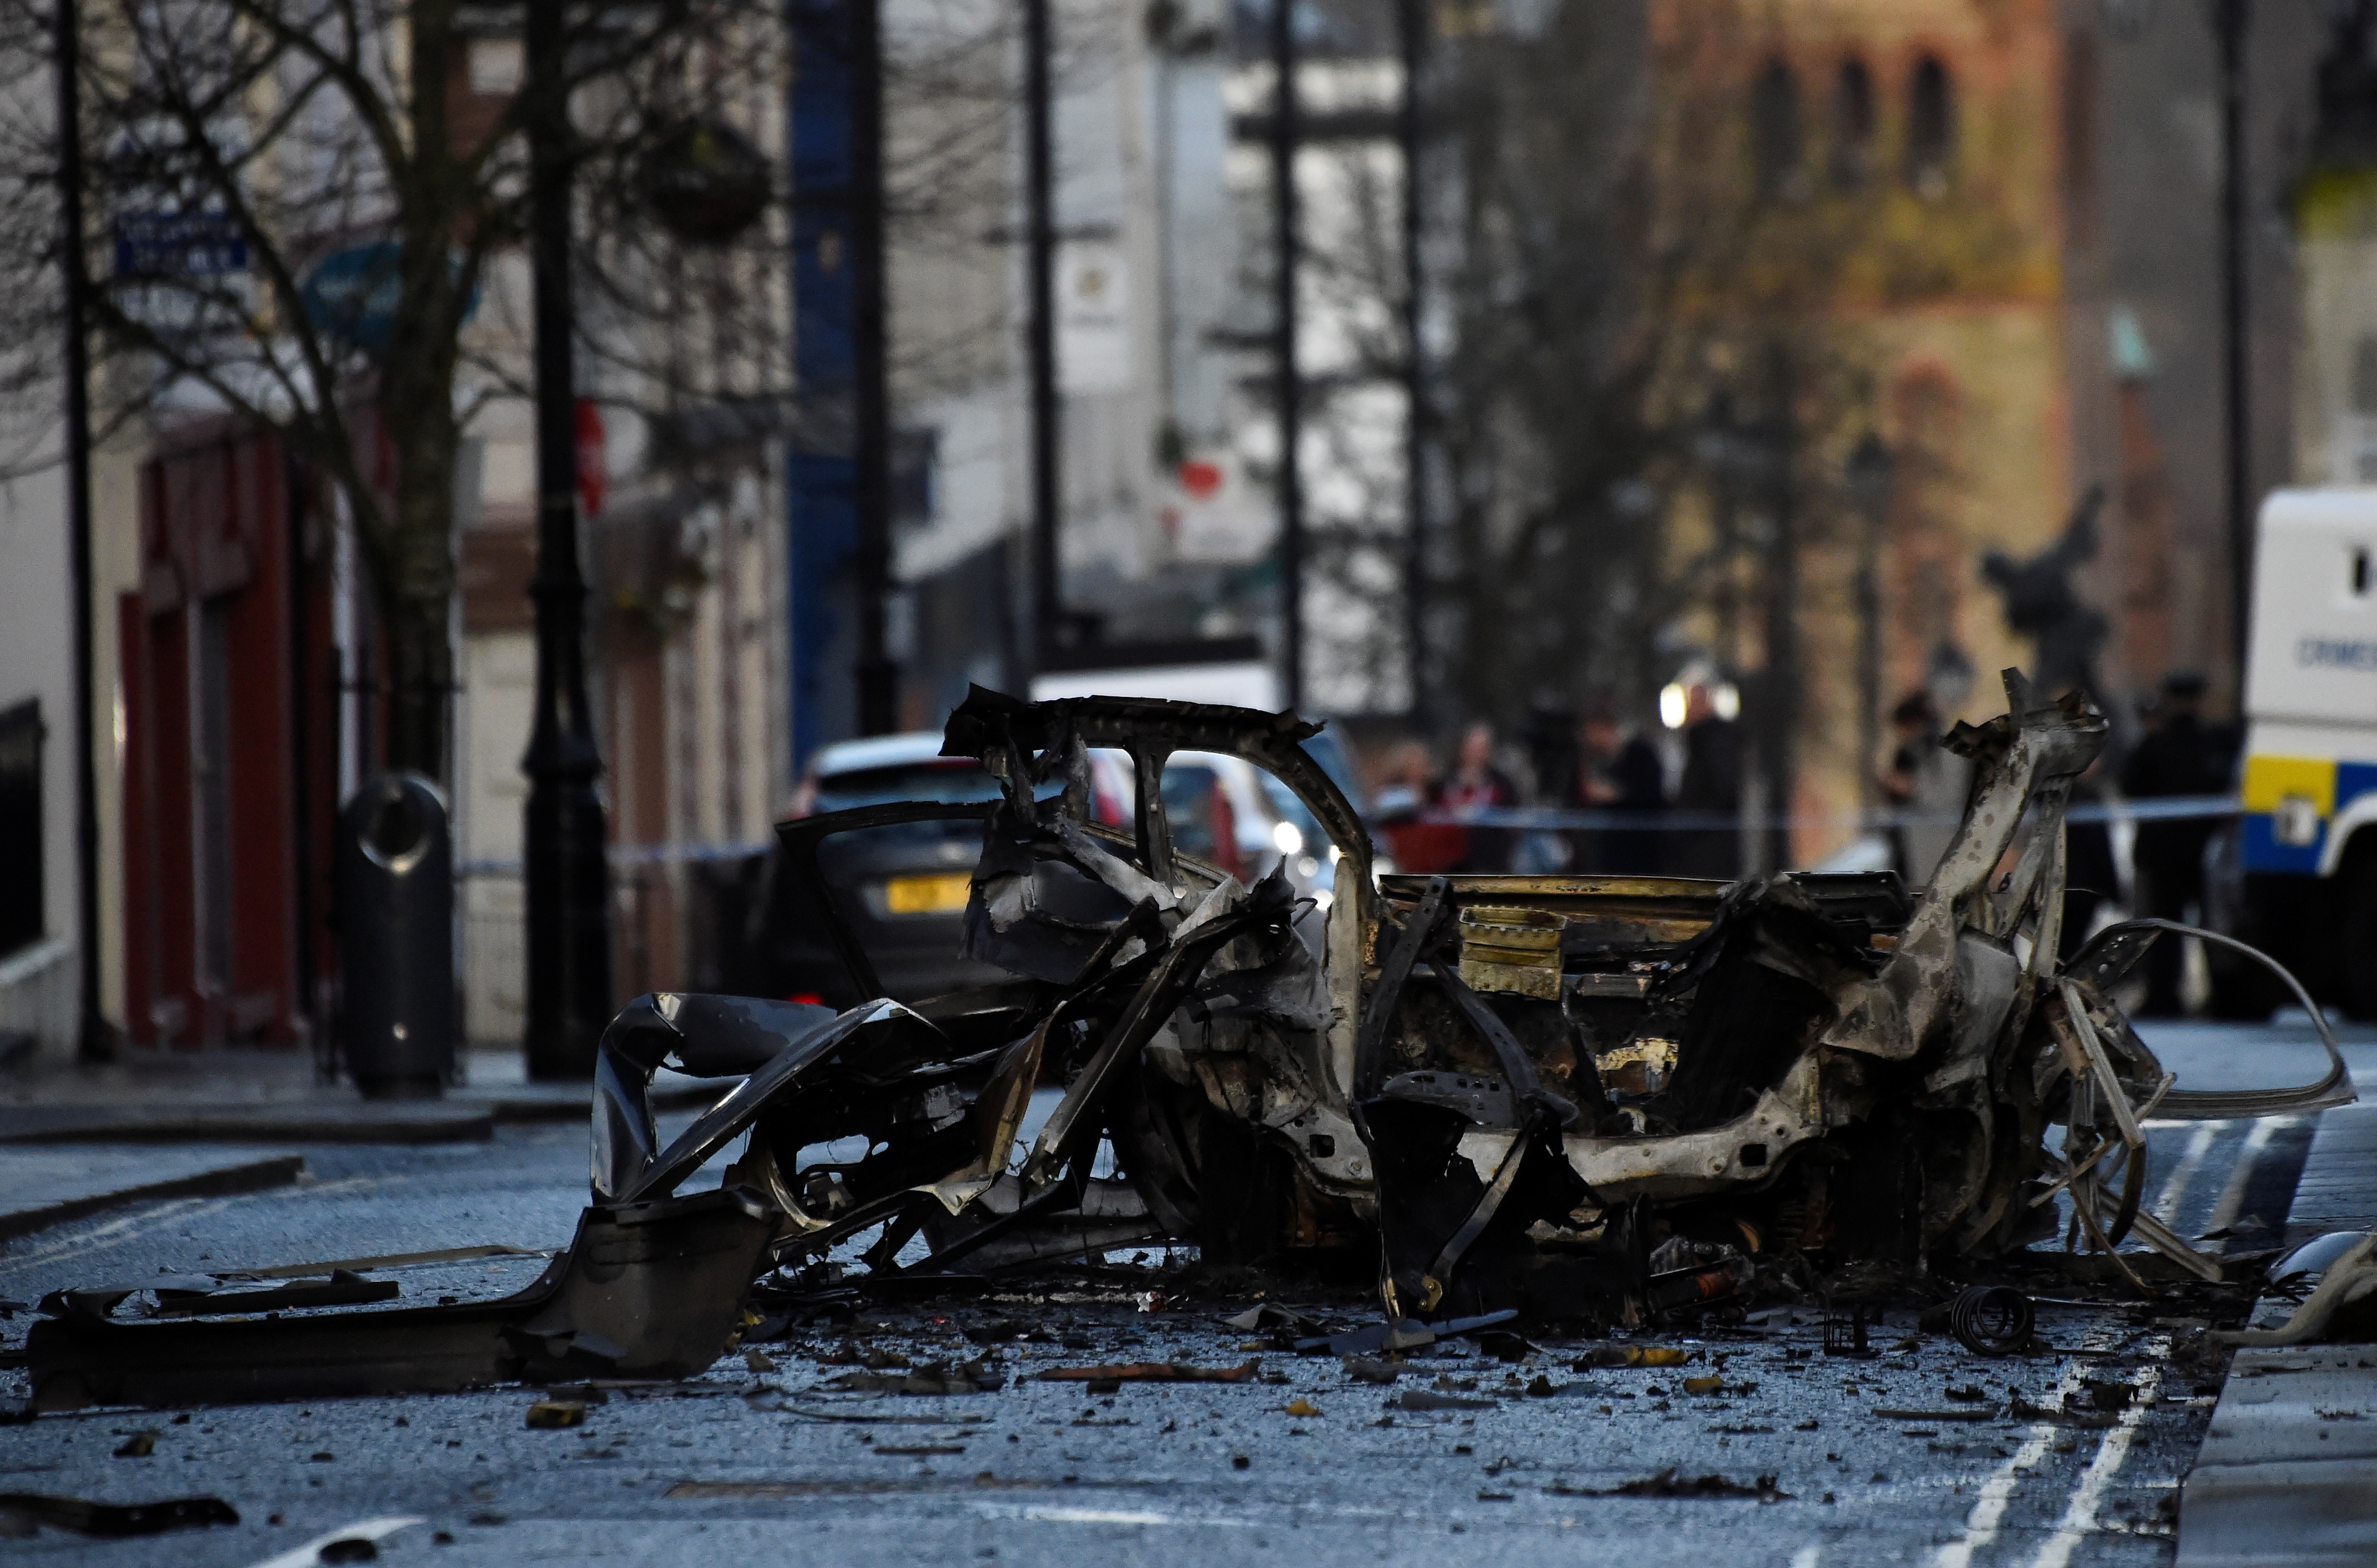 The scene of a suspected car bomb is seen in Londonderry, Northern Ireland January 20, 2019. REUTERS/Clodagh Kilcoyne